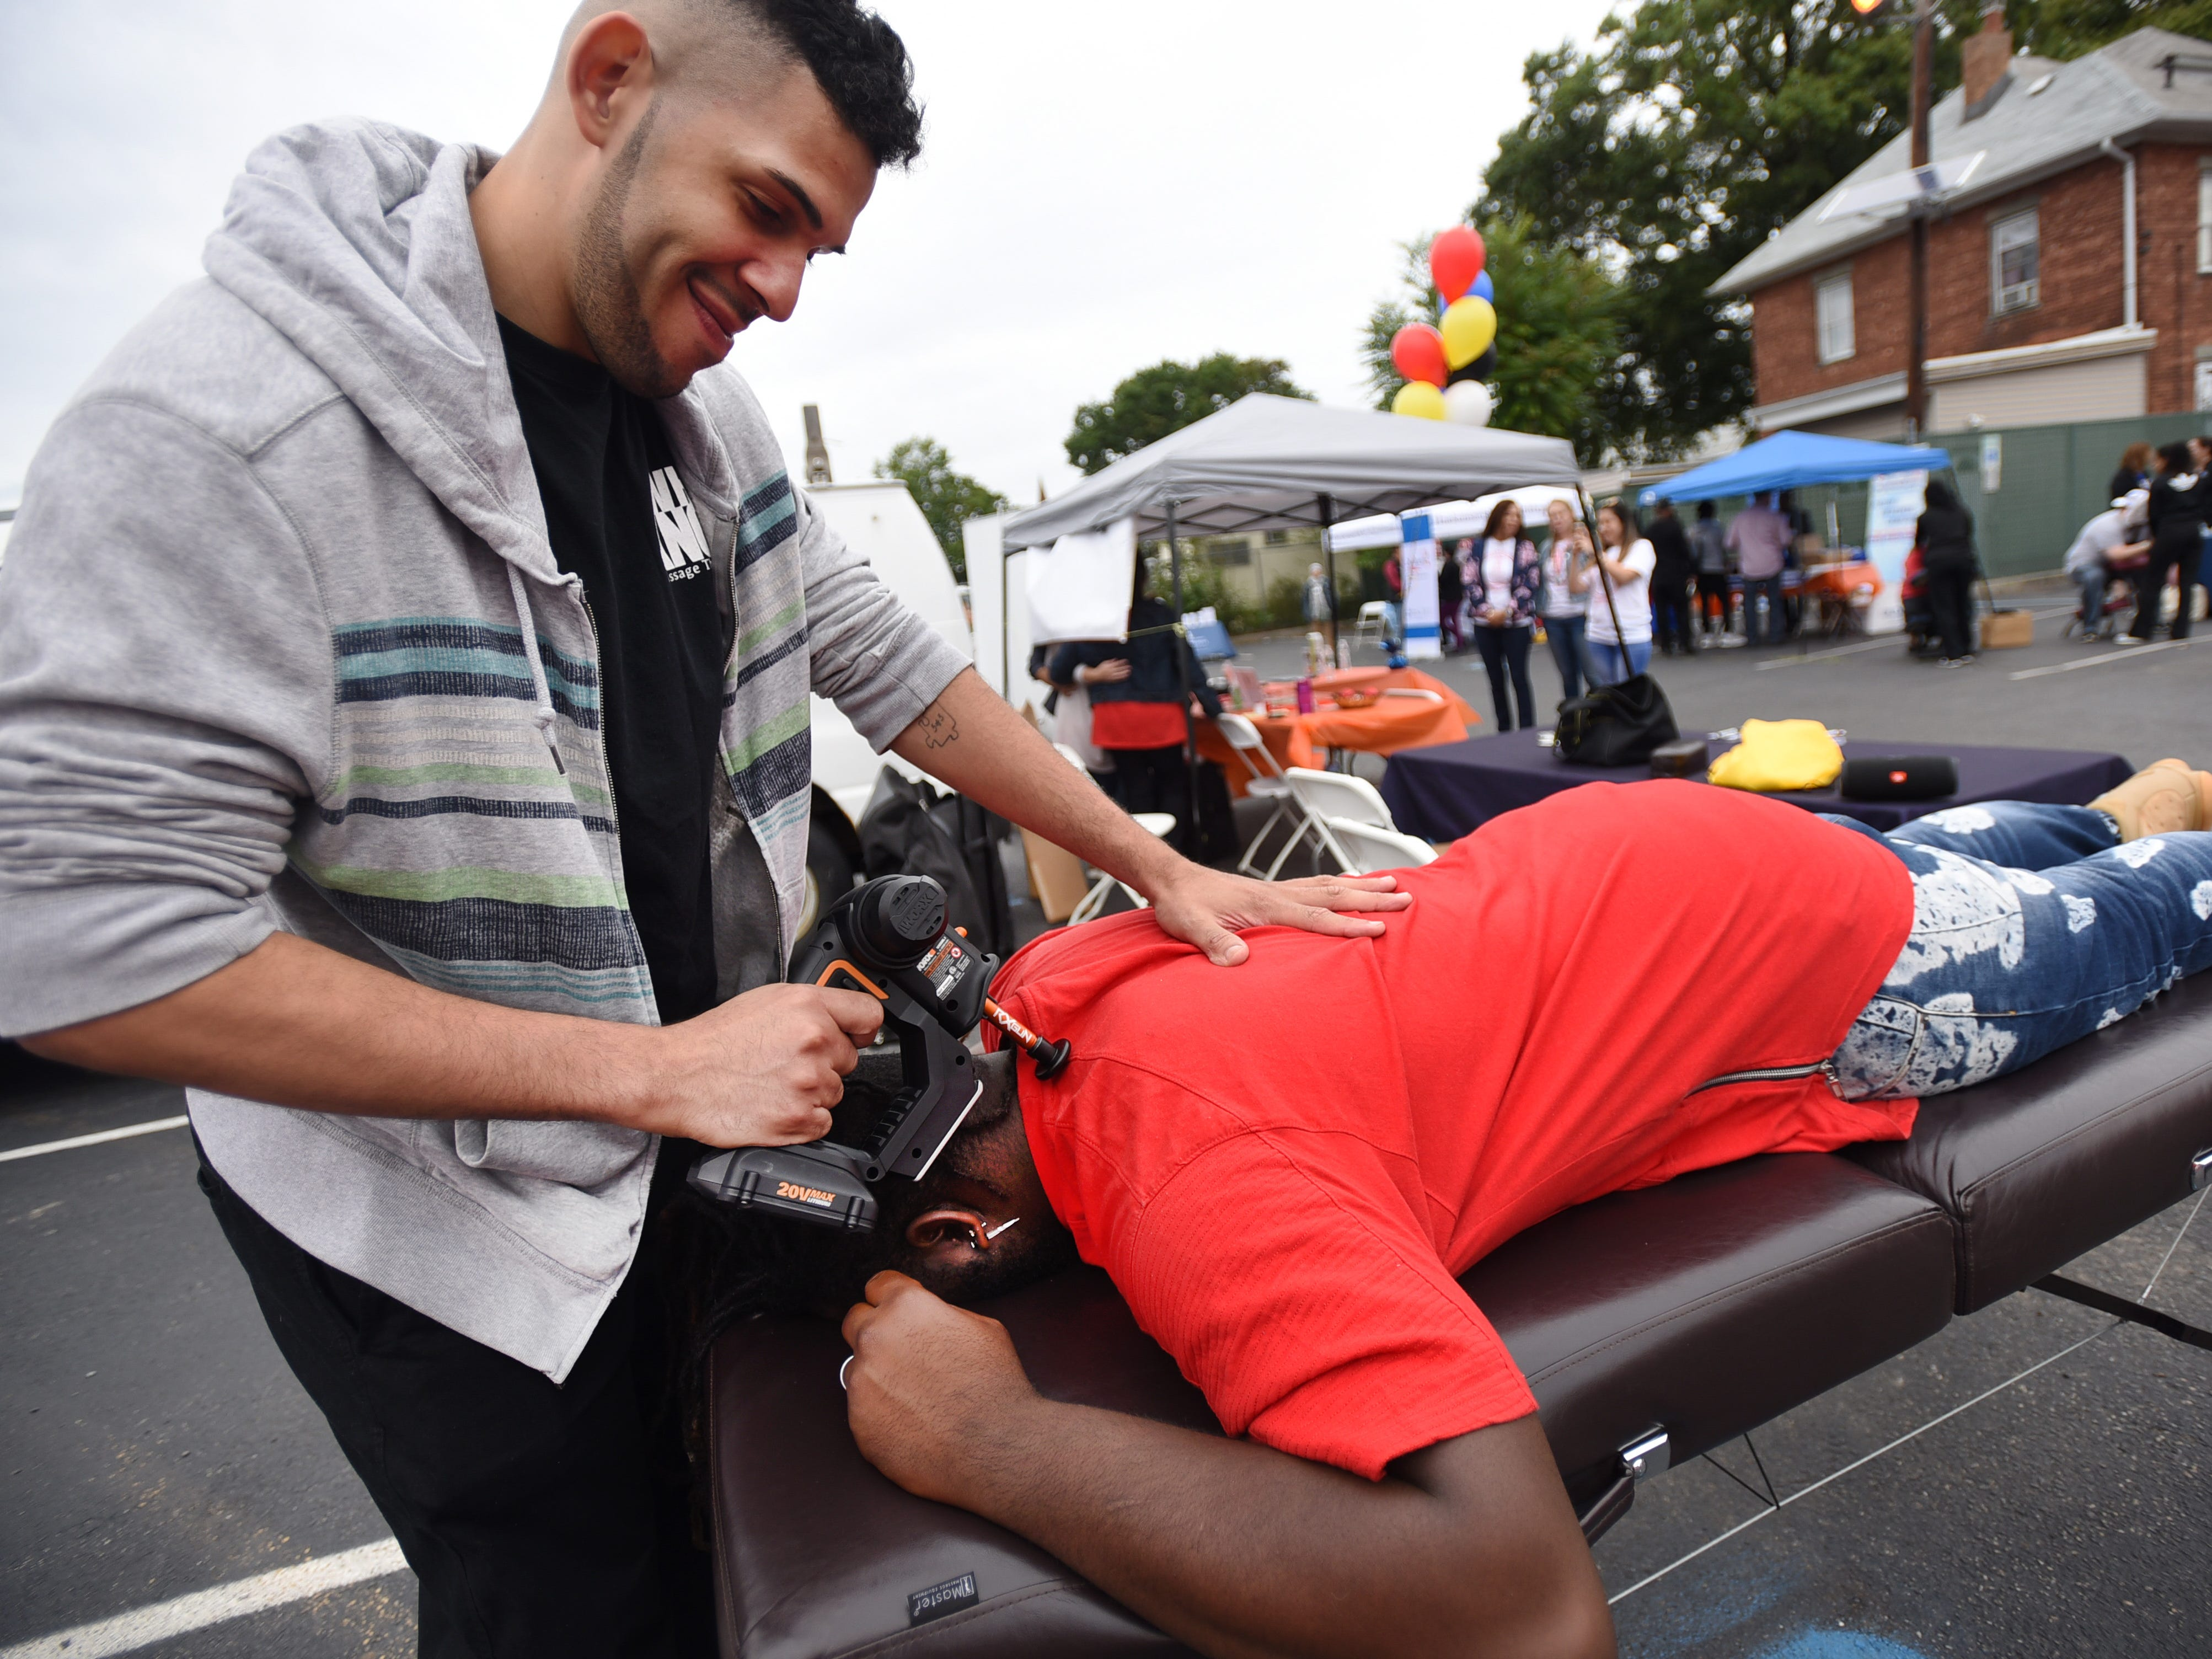 Luis Ramos of Why Knot You Massage Therapy, gives a massage by RX gun, which is used for sports medicine massage, during the first annual Resource and Community Wellness Fair held by Buddies of NJ in Hackensack on 0923/18. The Buddies support people living with or affected by HIV/AIDS